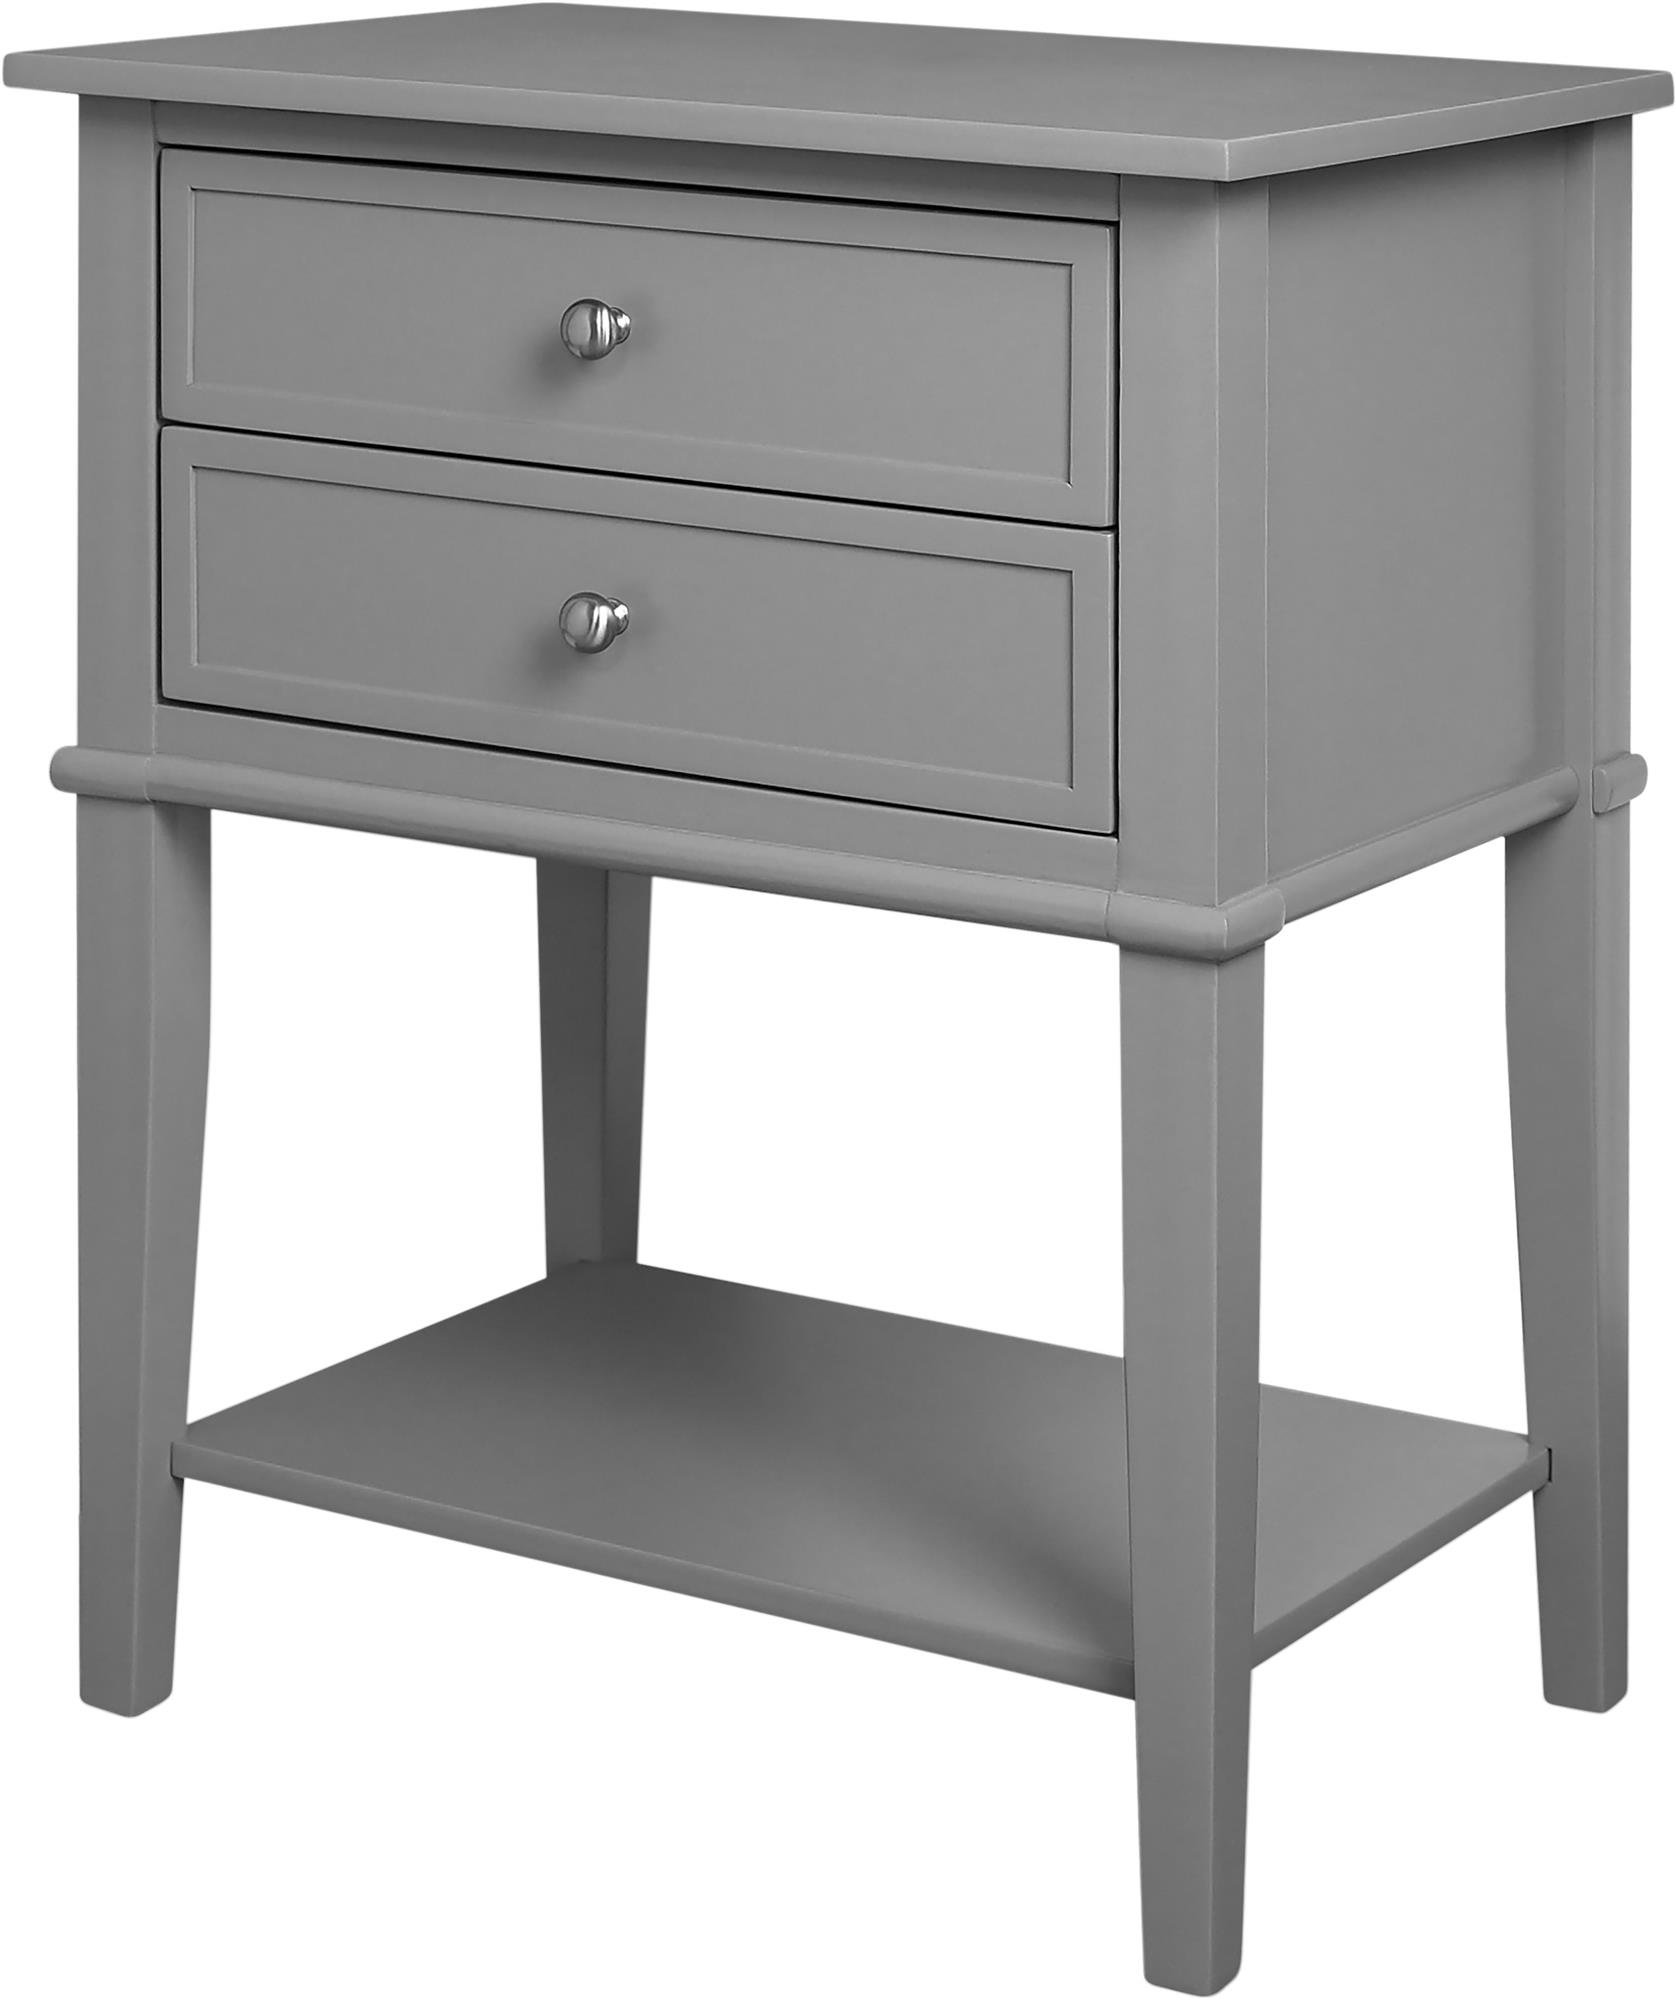 accent table with drawer fjnahl winsome ava black finish ameriwood home franklin drawers gray small asian lamps pine sideboard carpet threshold transition strip drop leaf folding